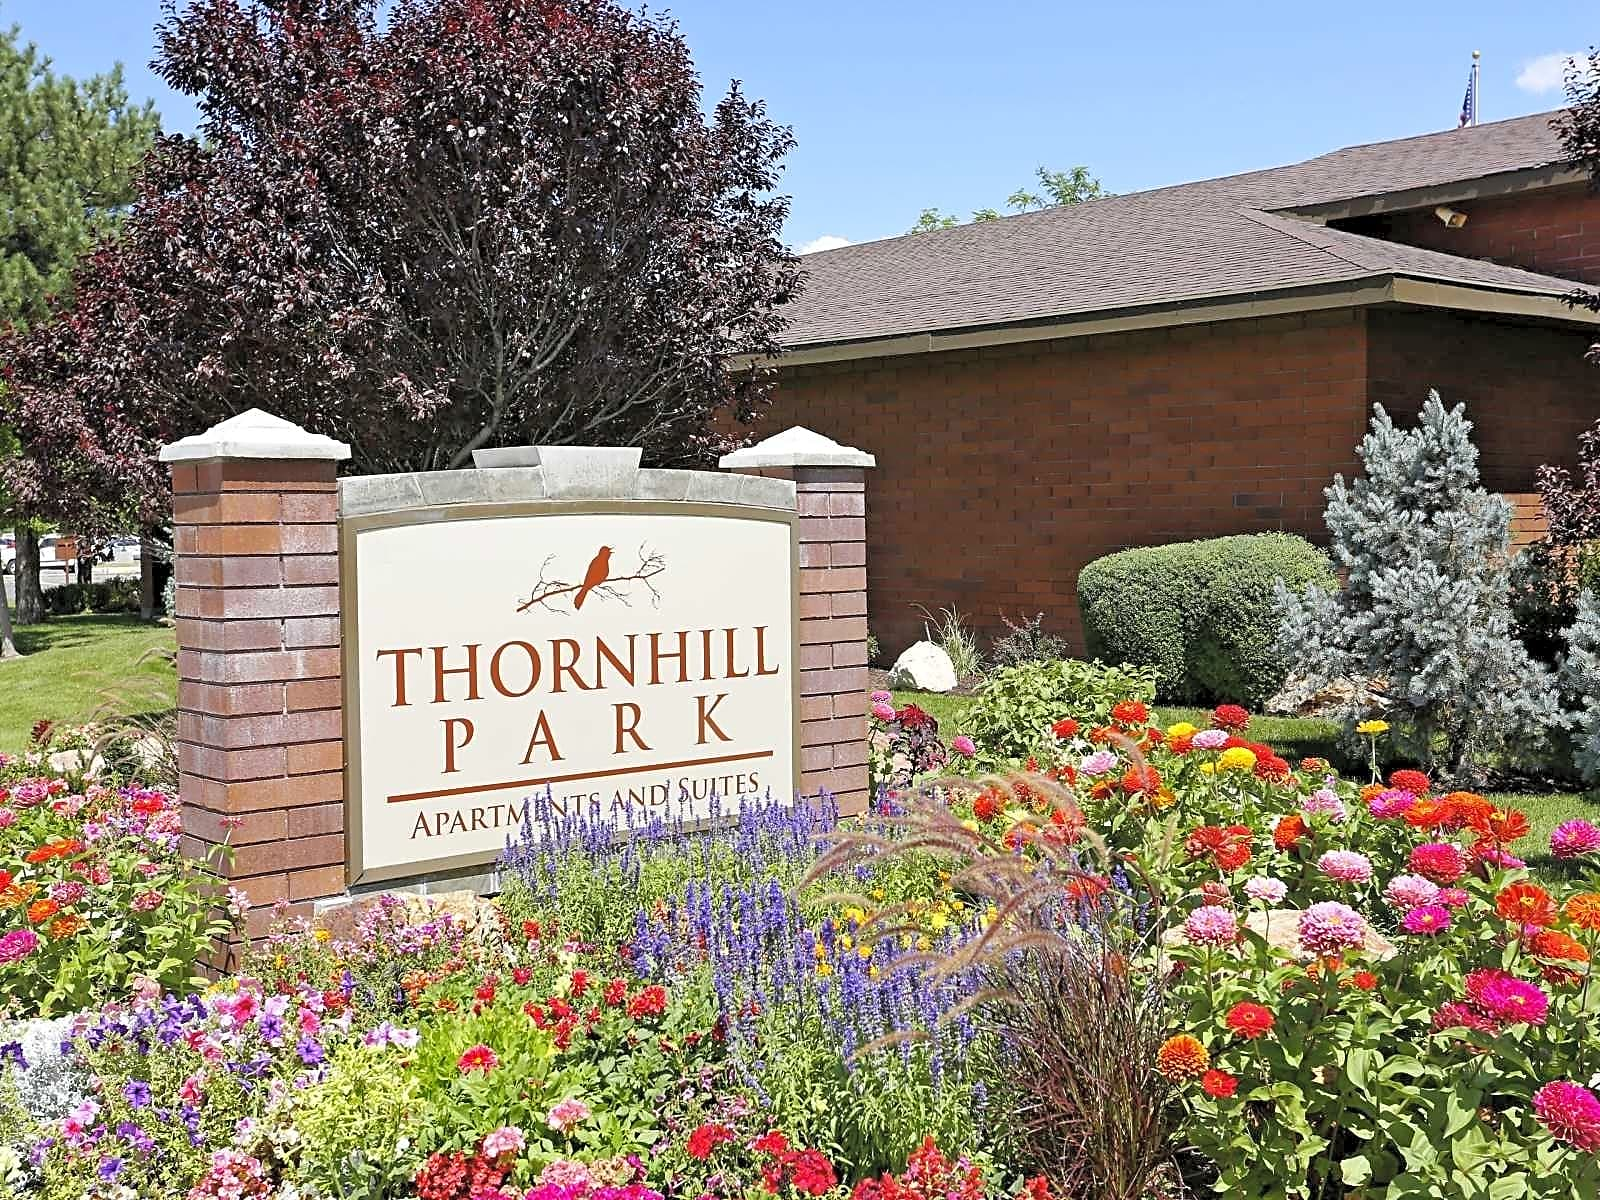 Thornhill Park for rent in Salt Lake City